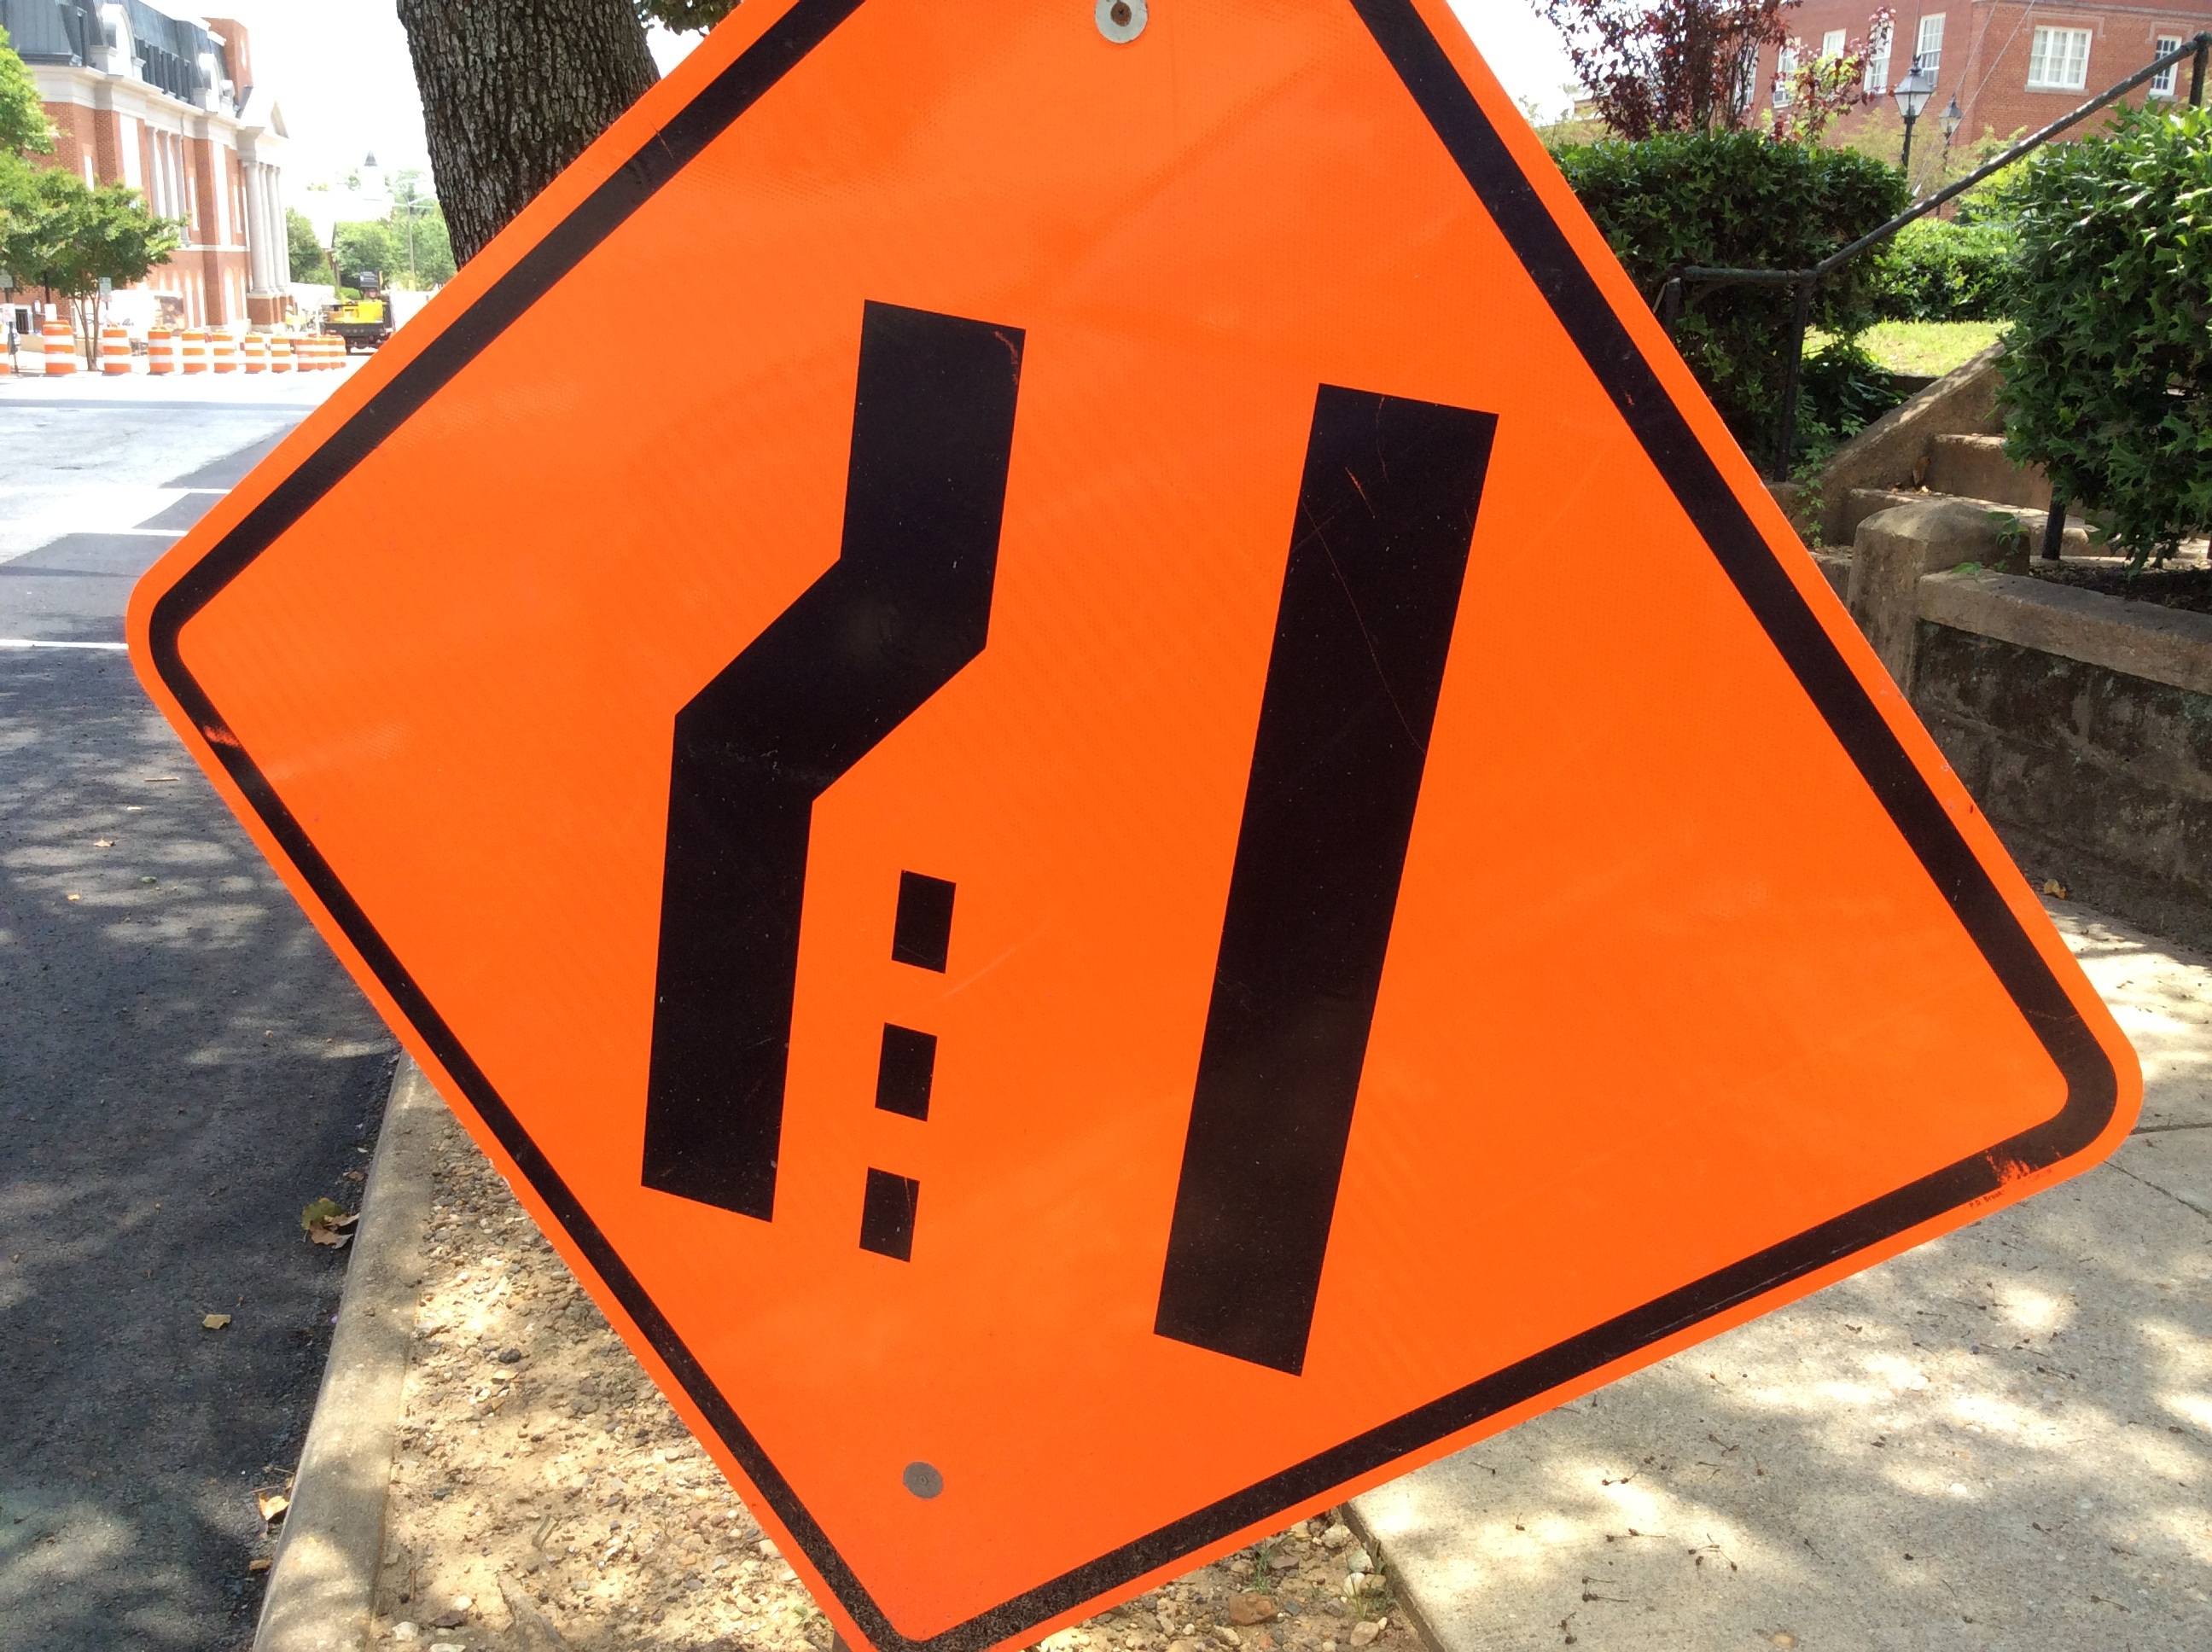 VDOT road work in the area this week